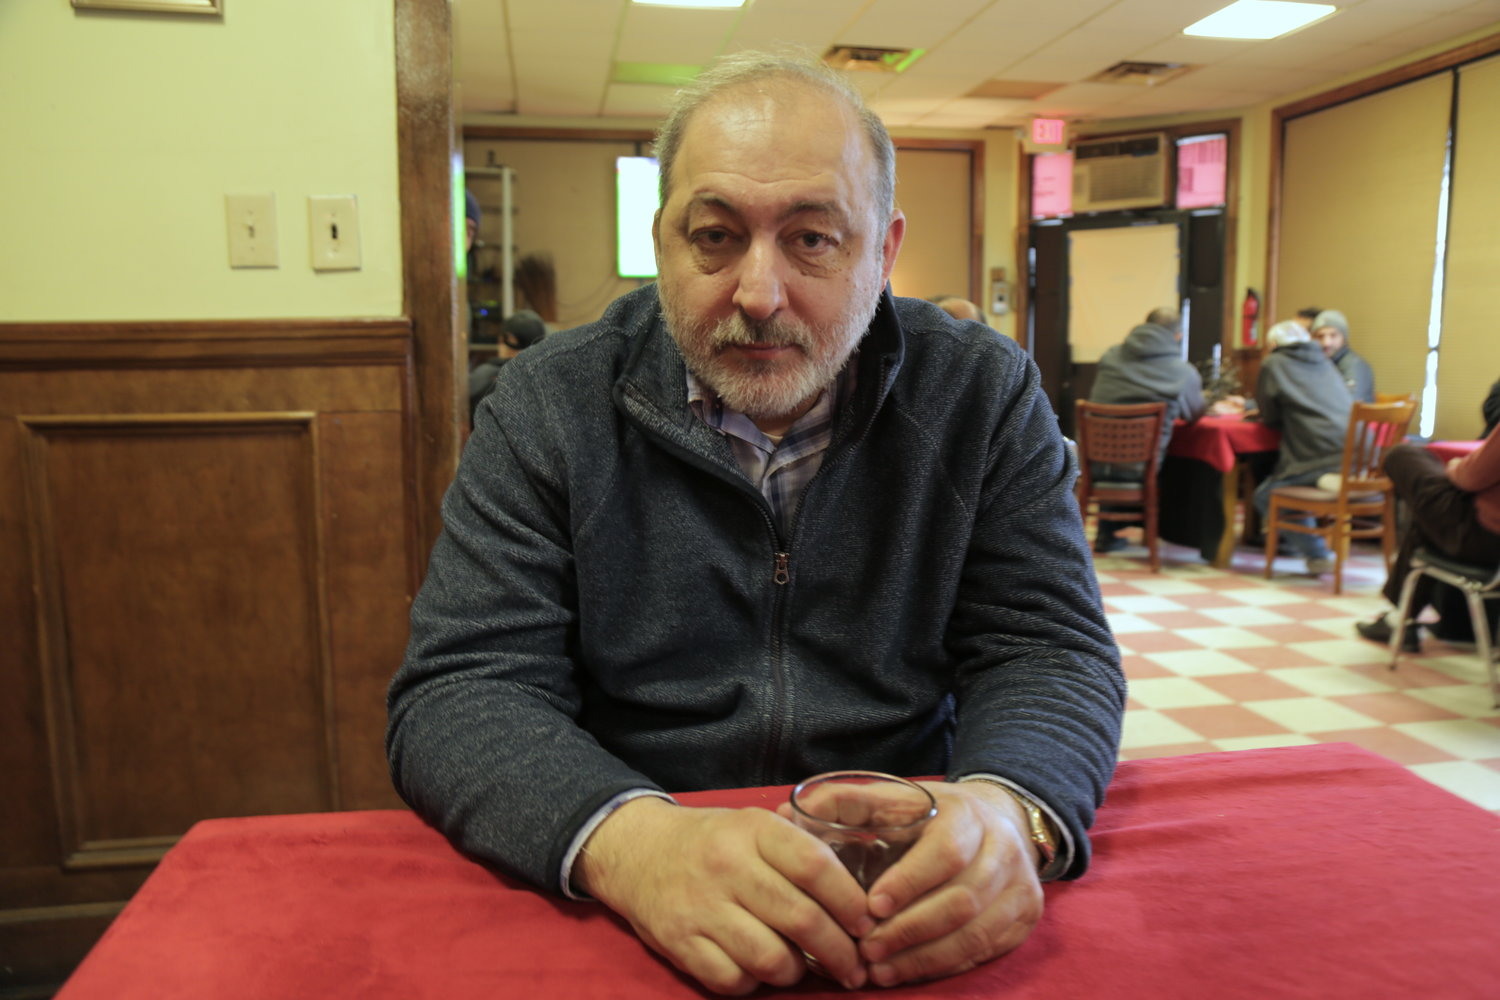 HOW WILL TRUMP'S IMMIGRATION POLICIES AFFECT NJ'S TURKISH COMMUNITIES?